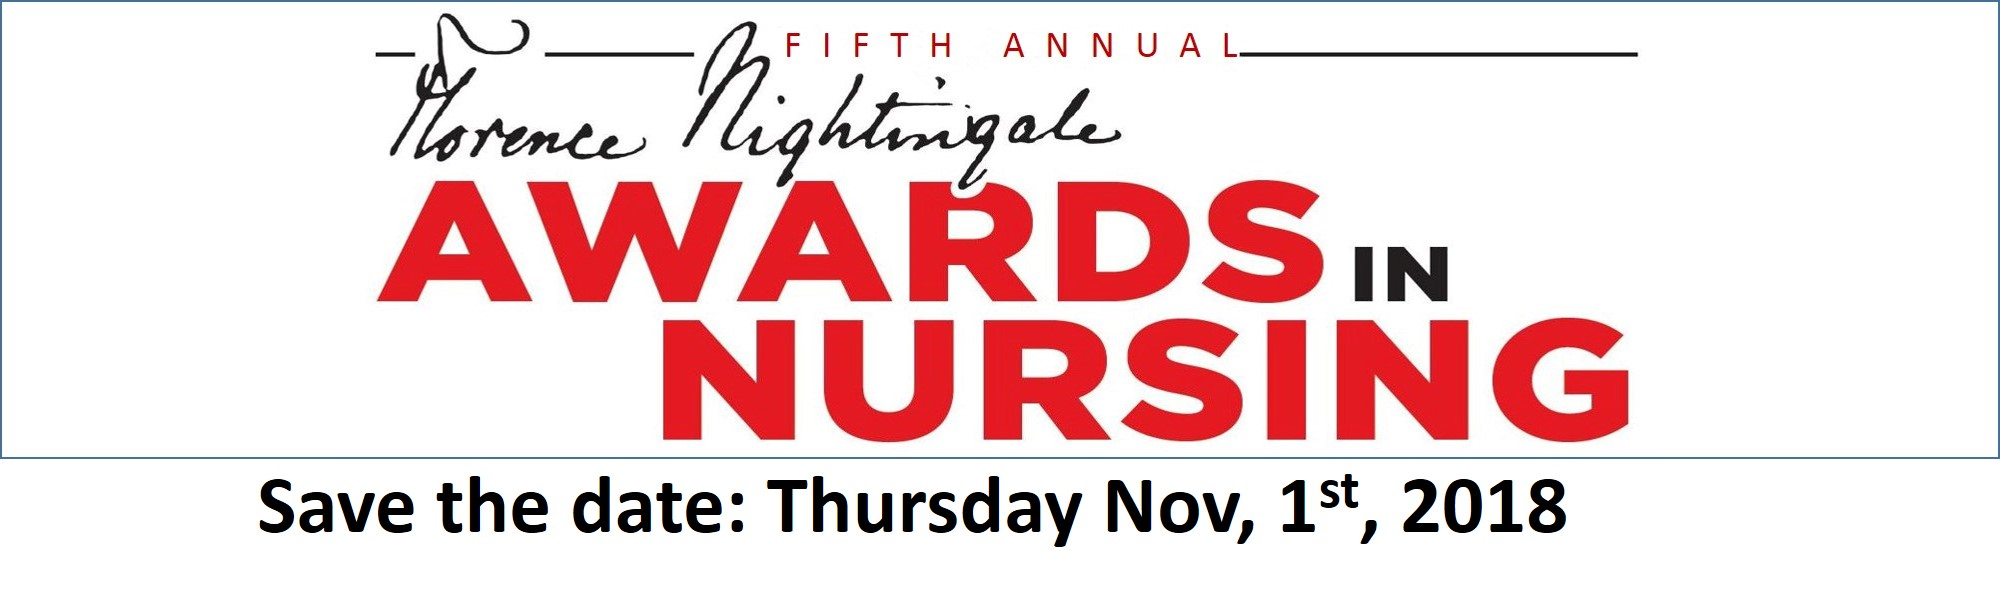 Florence Nightingale Awards in Nursing 2018